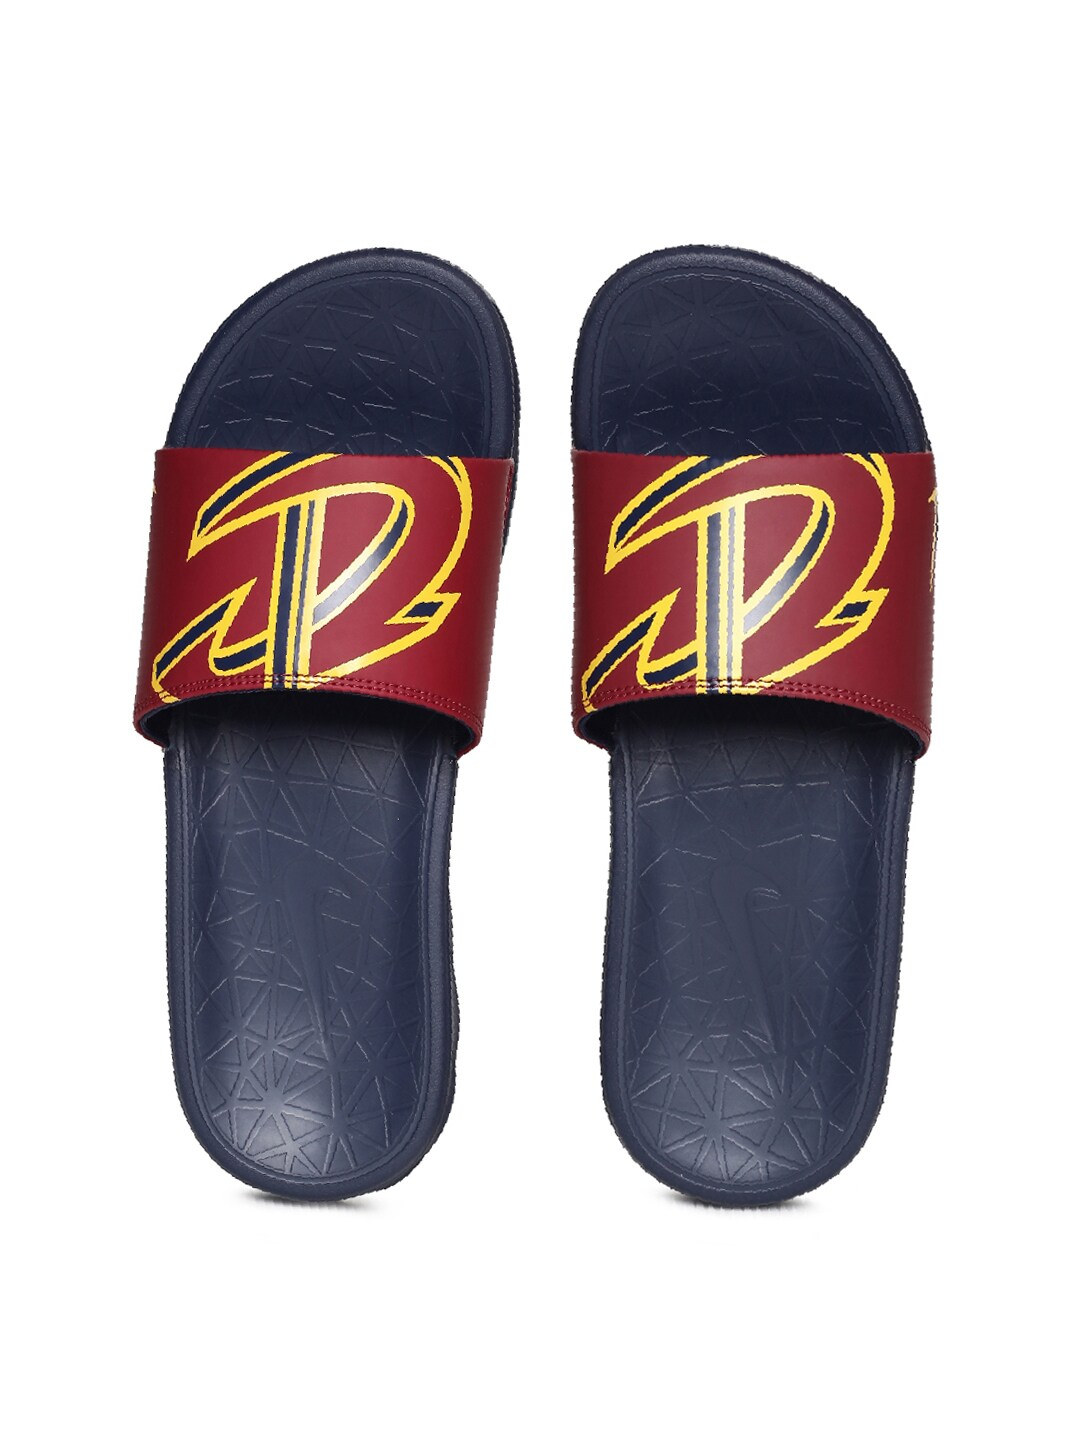 b9a1e4ecda34 Men s Nike Flip Flops - Buy Nike Flip Flops for Men Online in India